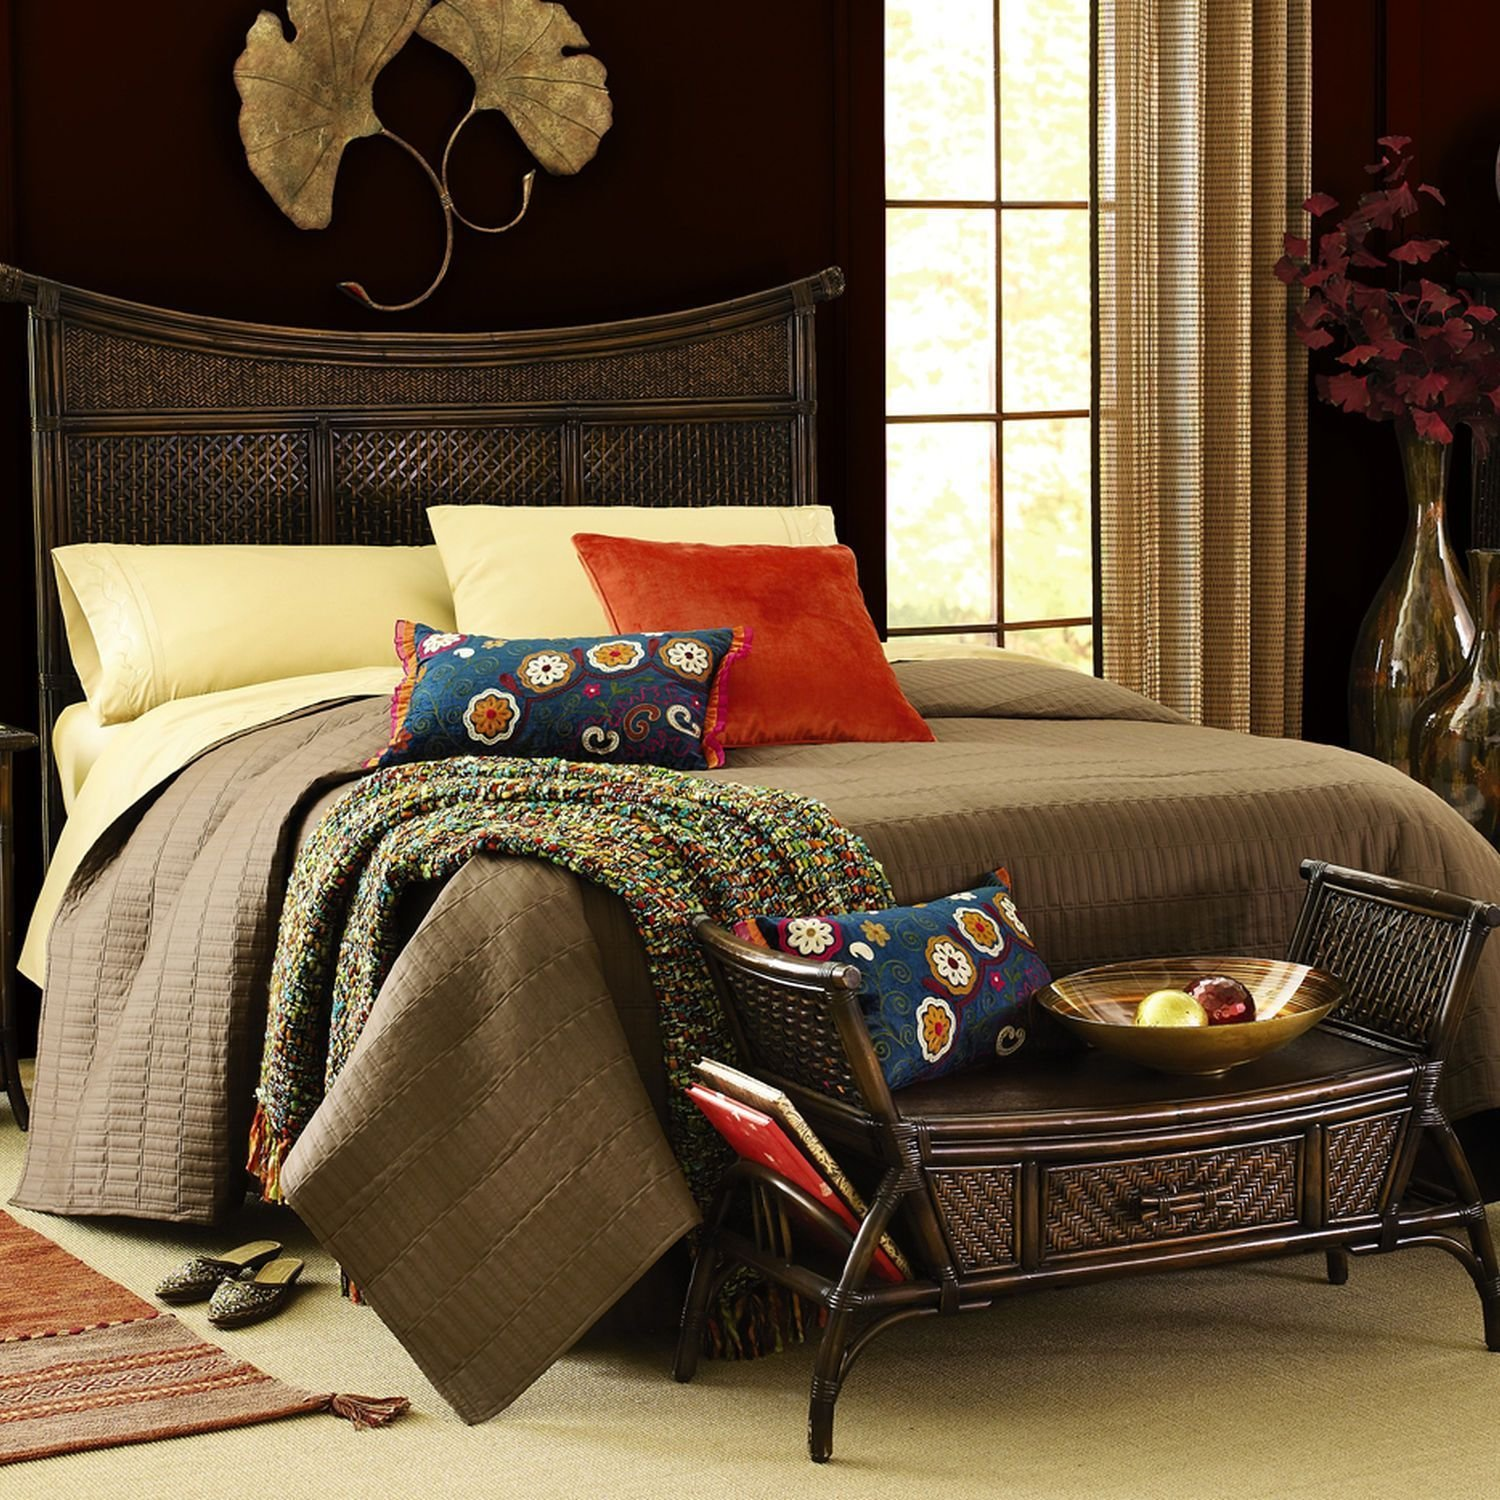 Best Pier 1 Senopati Furniture Bedroom Idea Our First Home ️ With Pictures